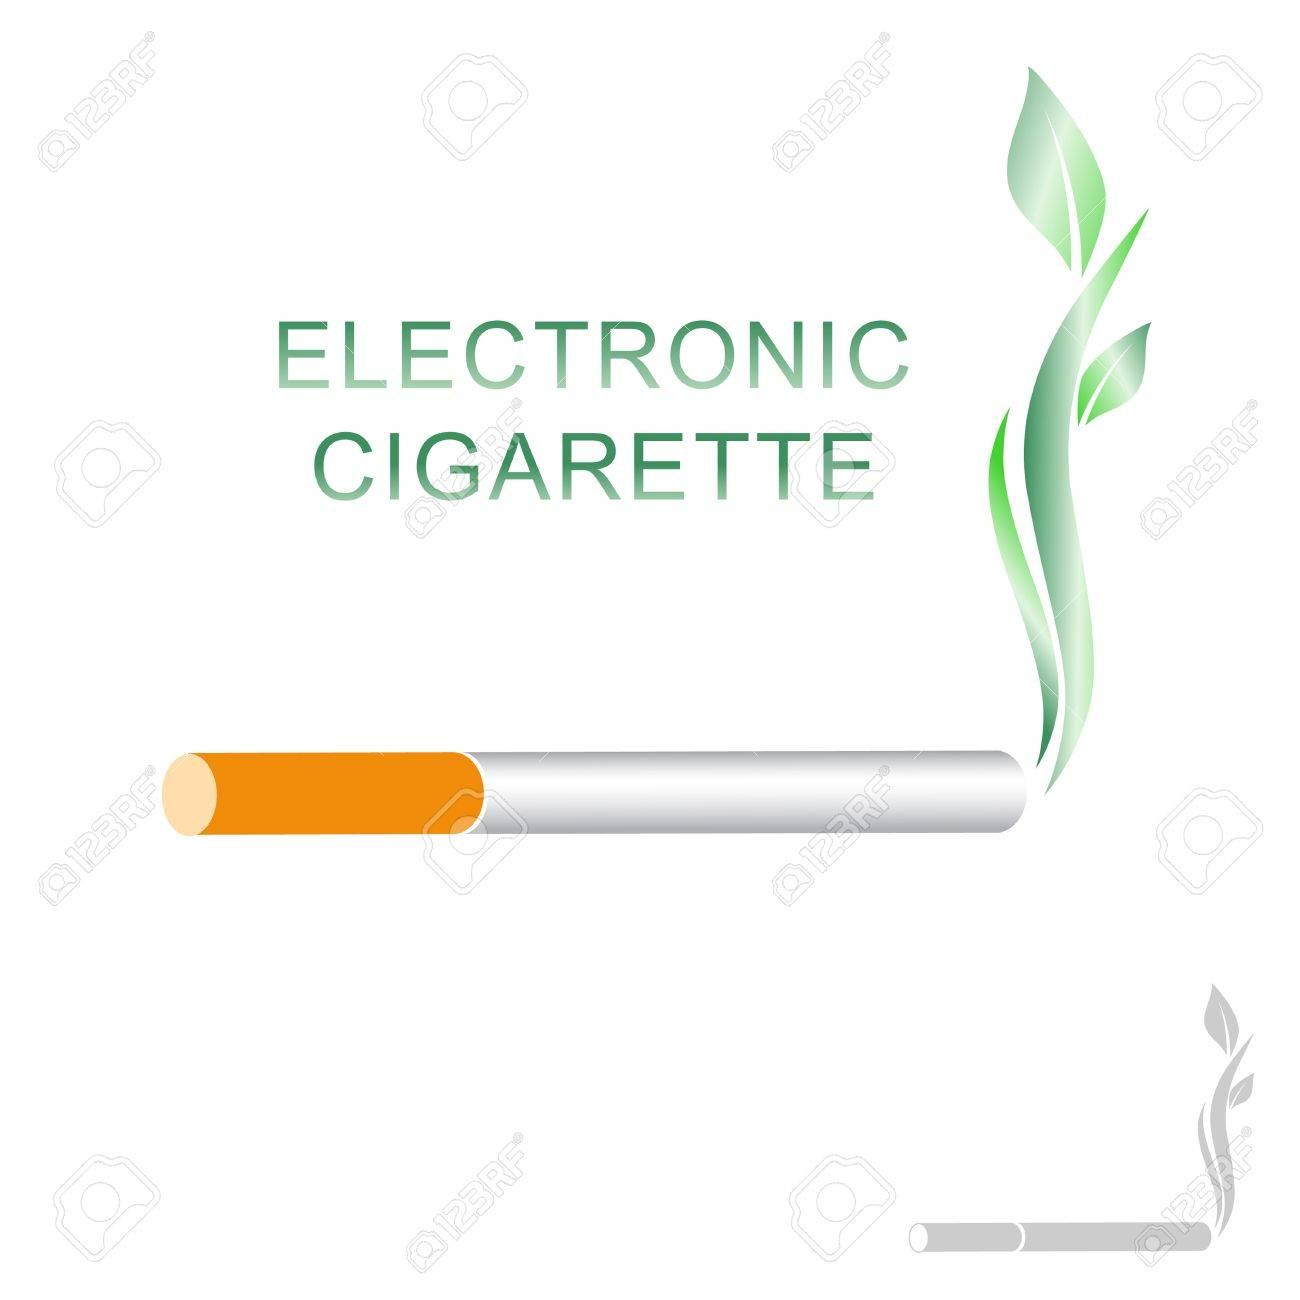 Electronic Cigarette Concept With Green Leaves Over White - 19751269